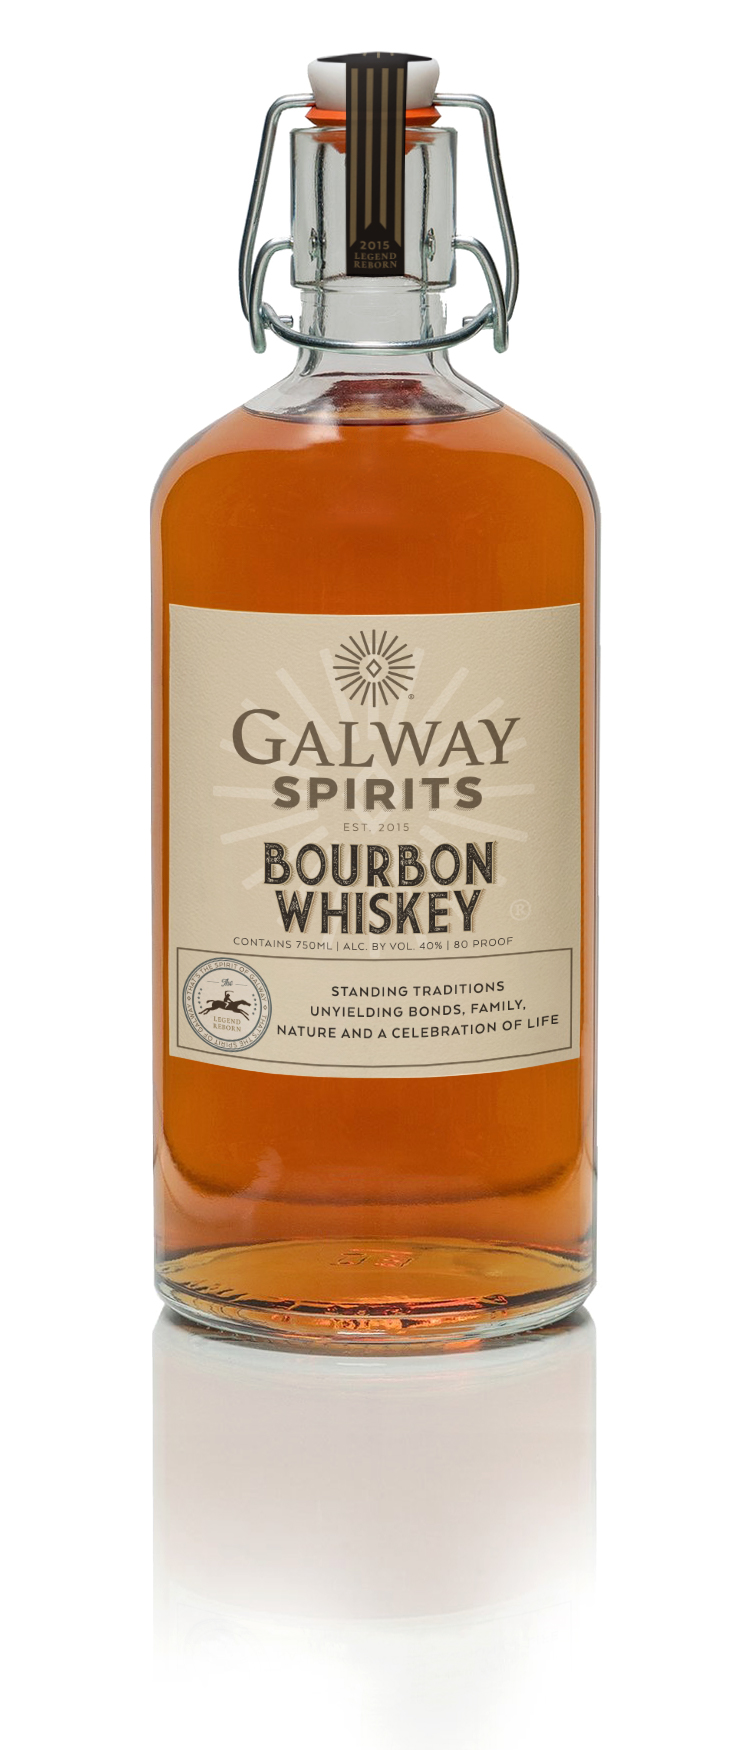 Bourbon - Sunset AmberA sophisticated flavor with excellent bouquet, solid throughout with honey, caramel, vanilla and a hint of orange. Silky smooth, drawing together to a remarkably warm finish.